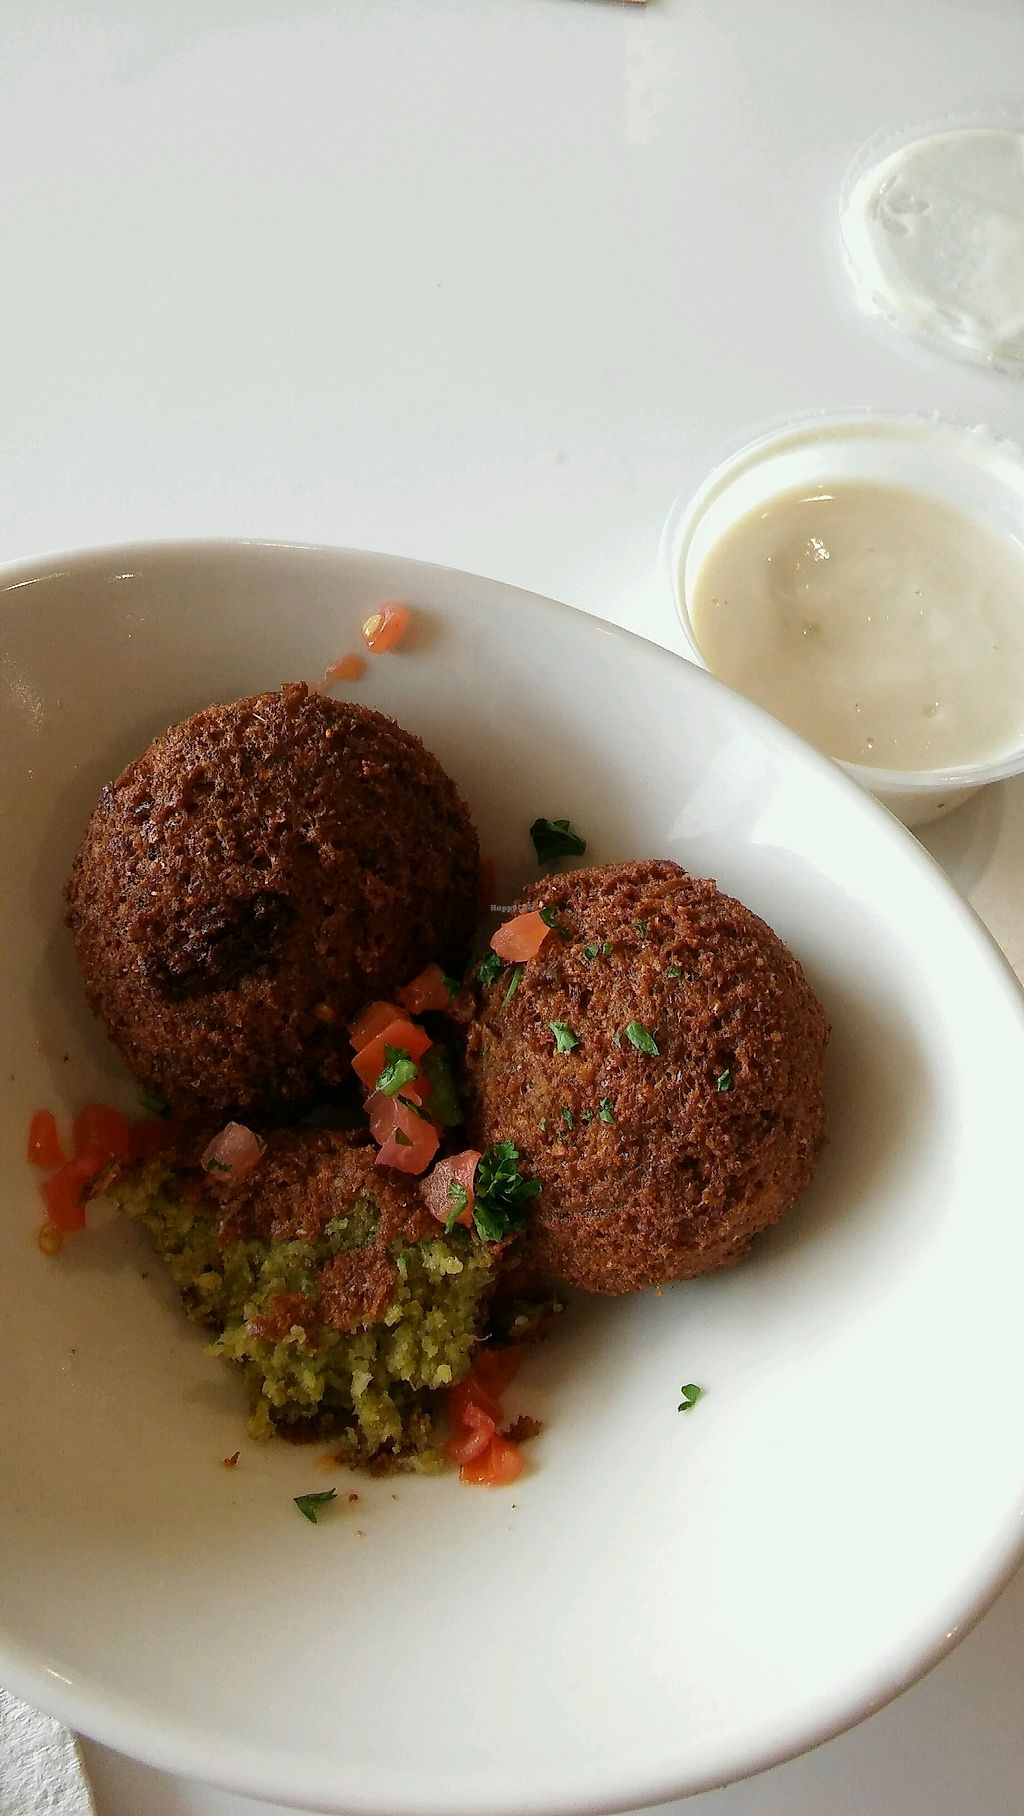 """Photo of Aladdin's Eatery  by <a href=""""/members/profile/RachelLette"""">RachelLette</a> <br/>Falafel!!! - Vegan <br/> September 19, 2017  - <a href='/contact/abuse/image/42970/306220'>Report</a>"""